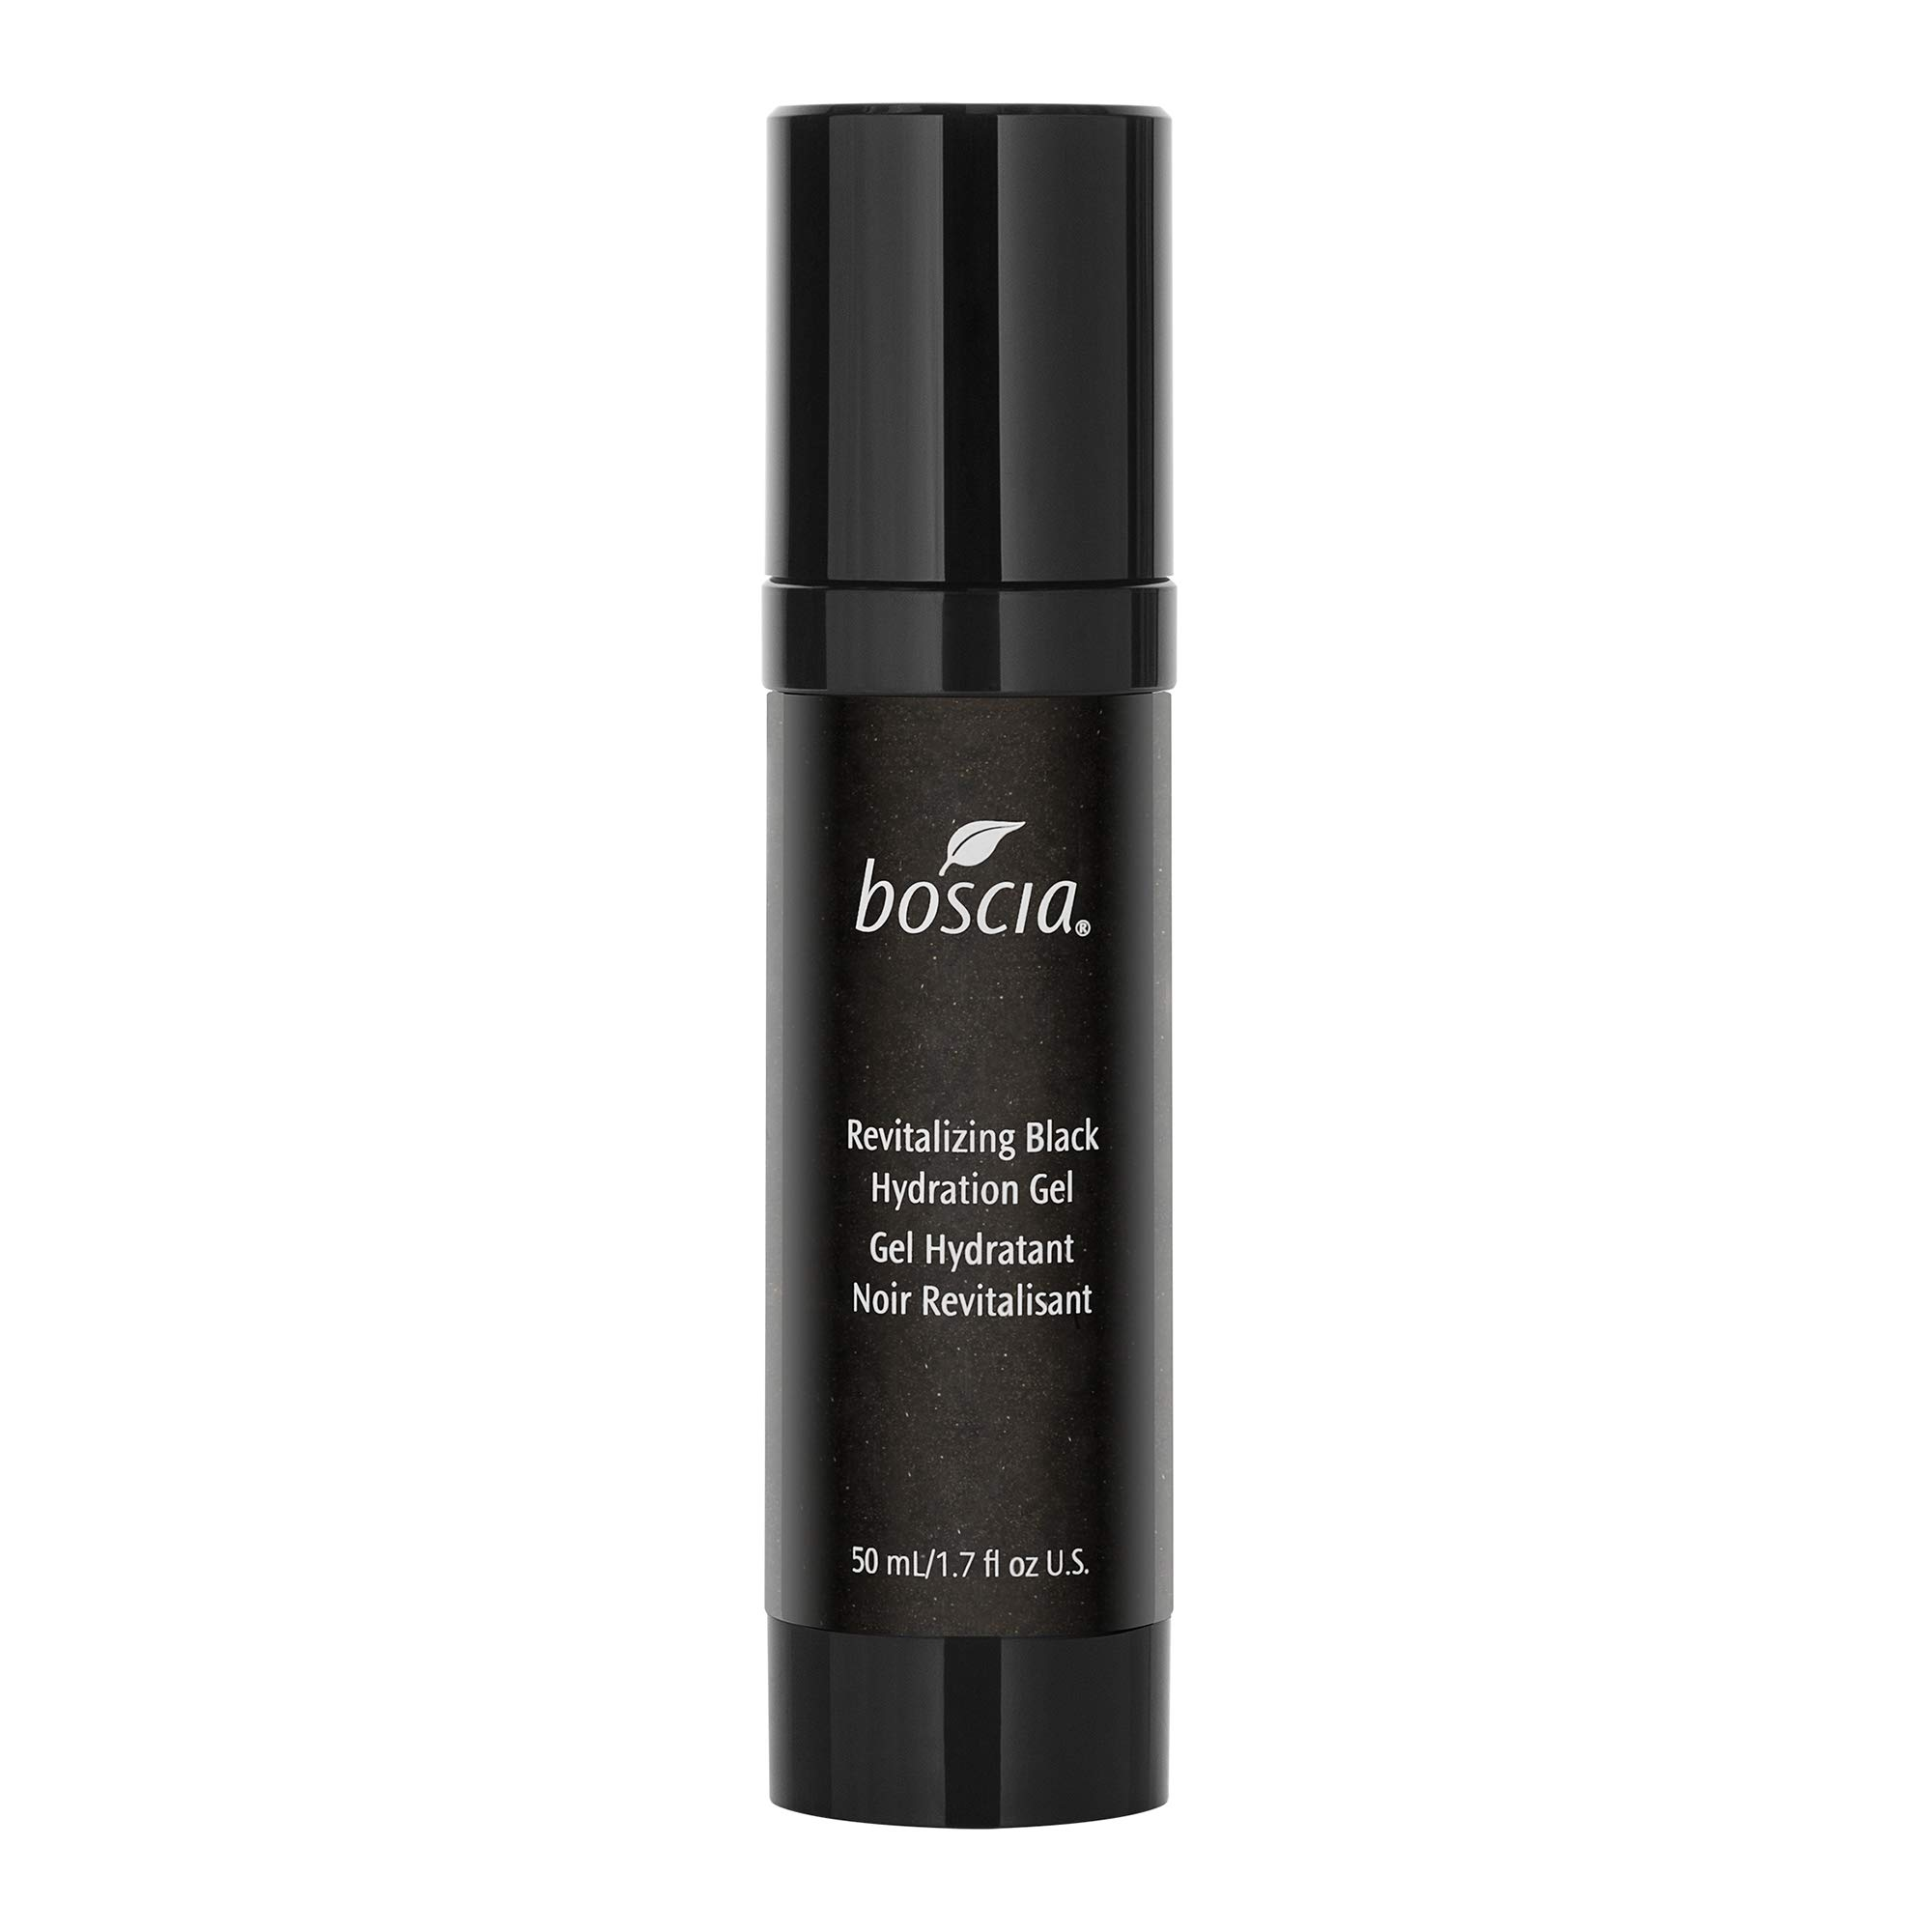 boscia Revitalizing Black Charcoal Hydration Gel - Black Charcoal and Vitamin C Daily Hydration Gel Face Moisturizer, 1.7 Fl Oz